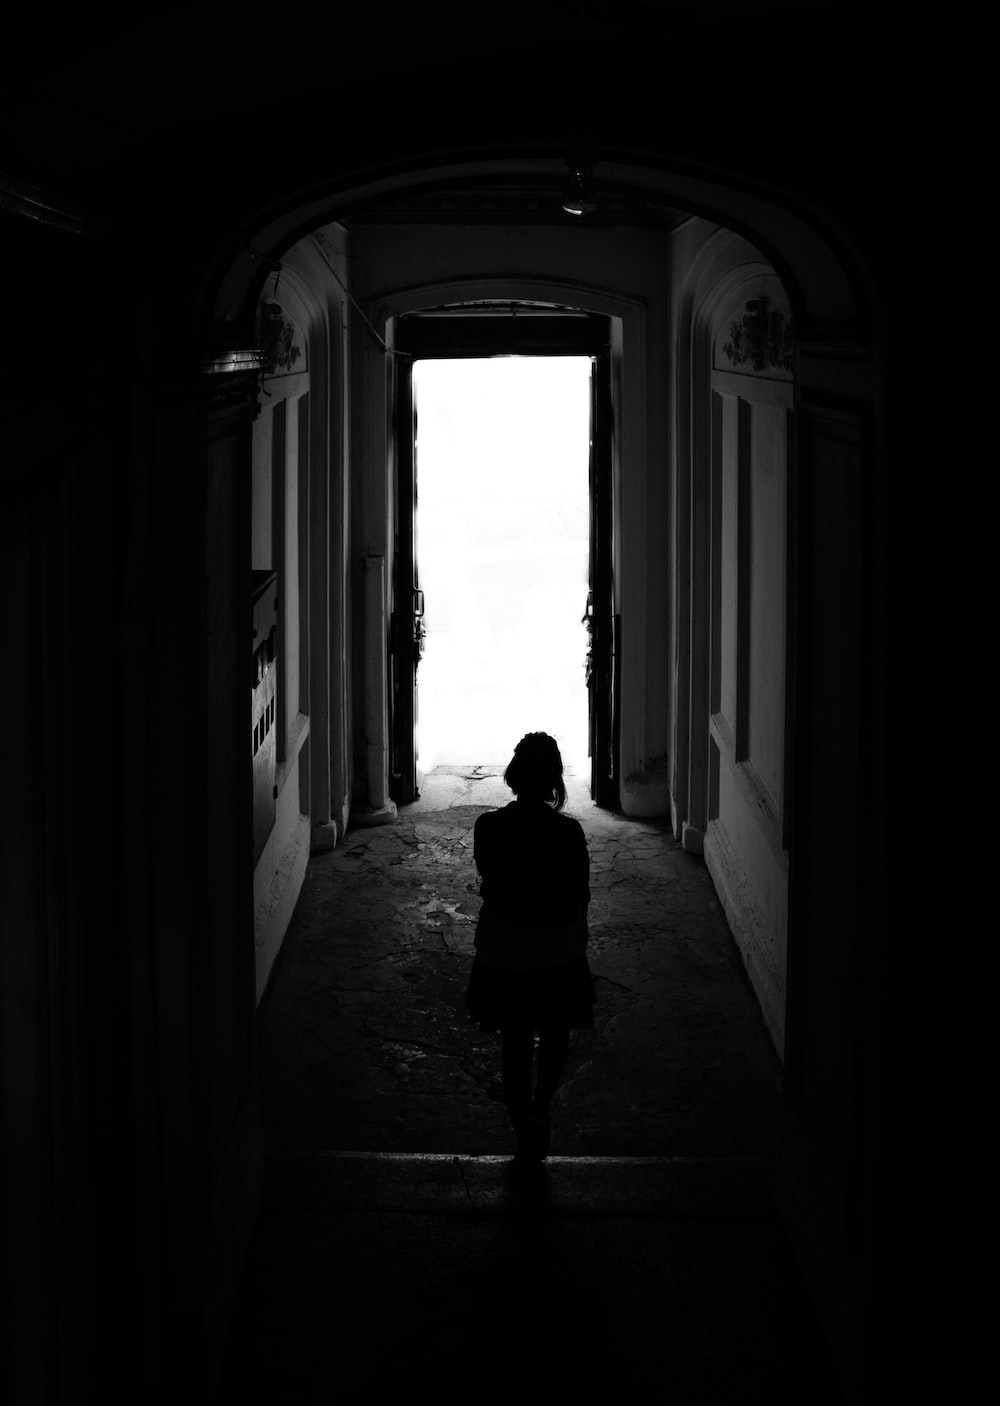 silhouette of woman walking on hallway